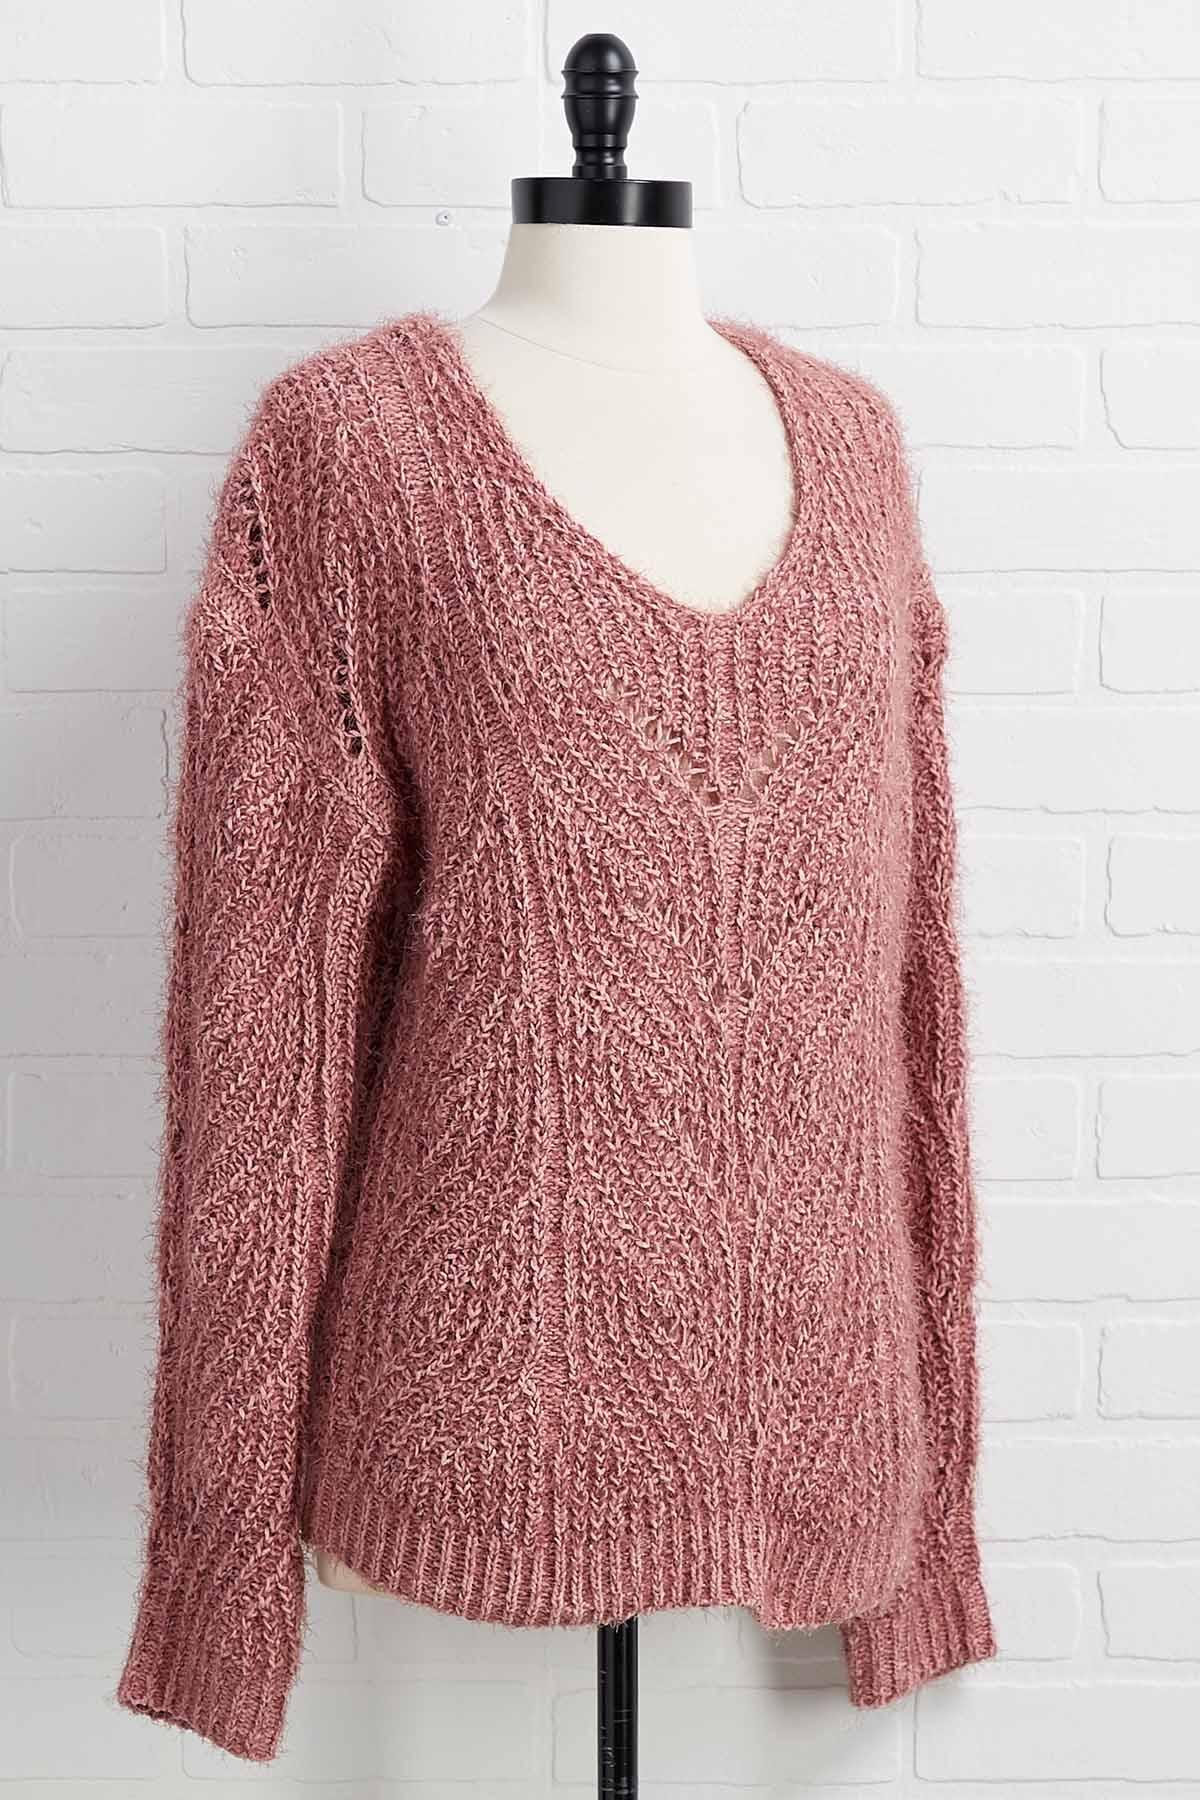 Knit Back And Watch Sweater